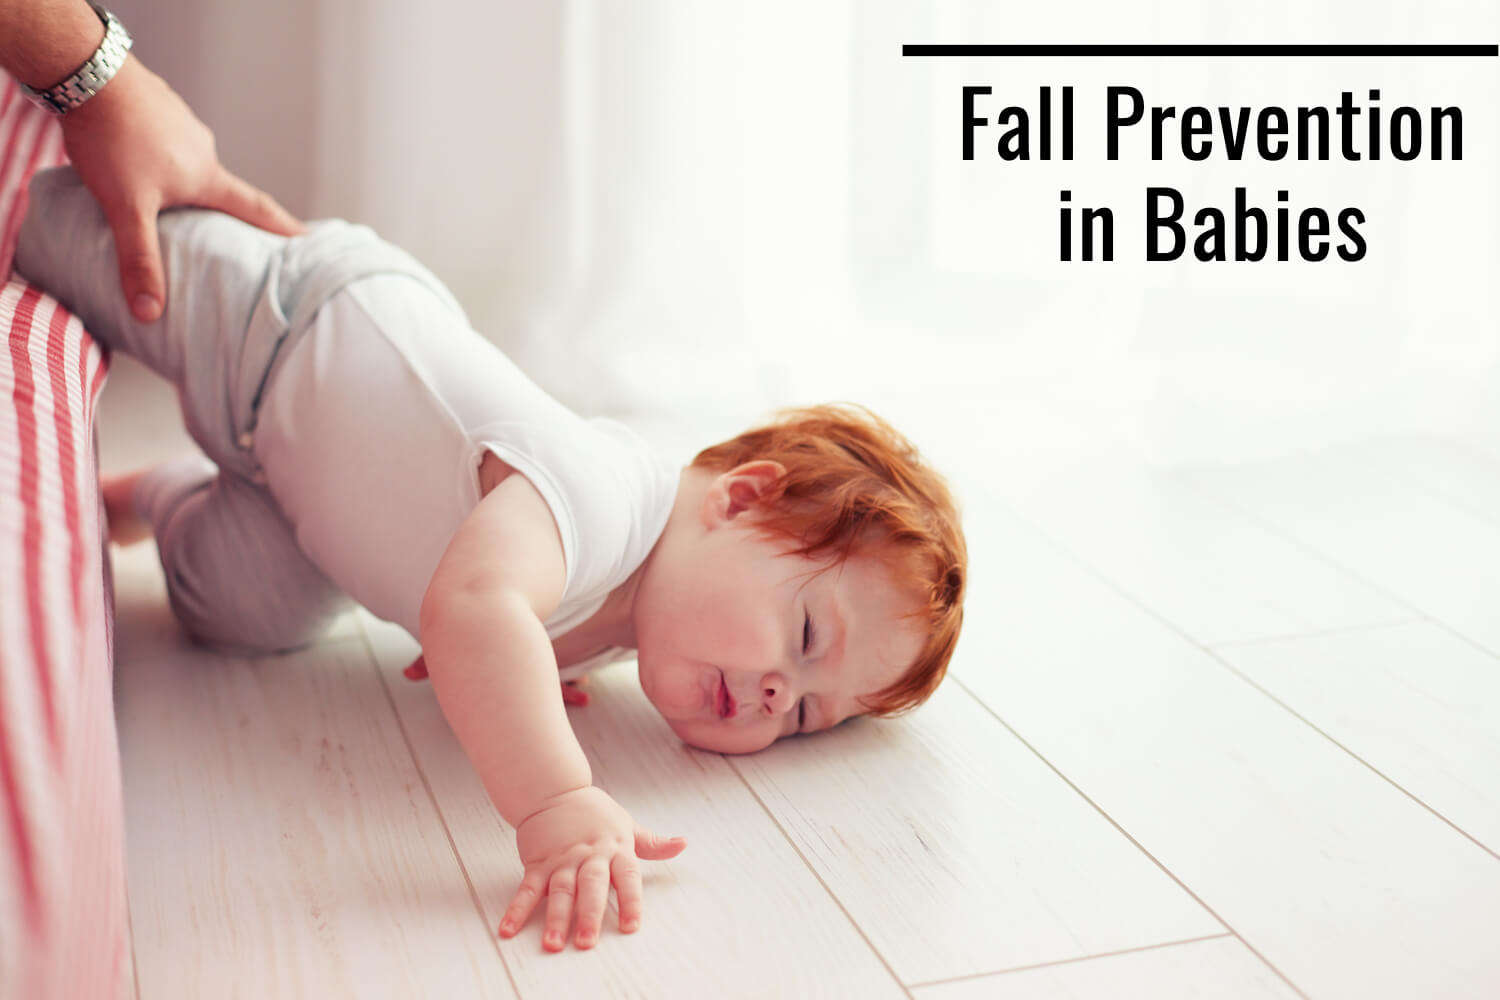 Fall Prevention in Babies